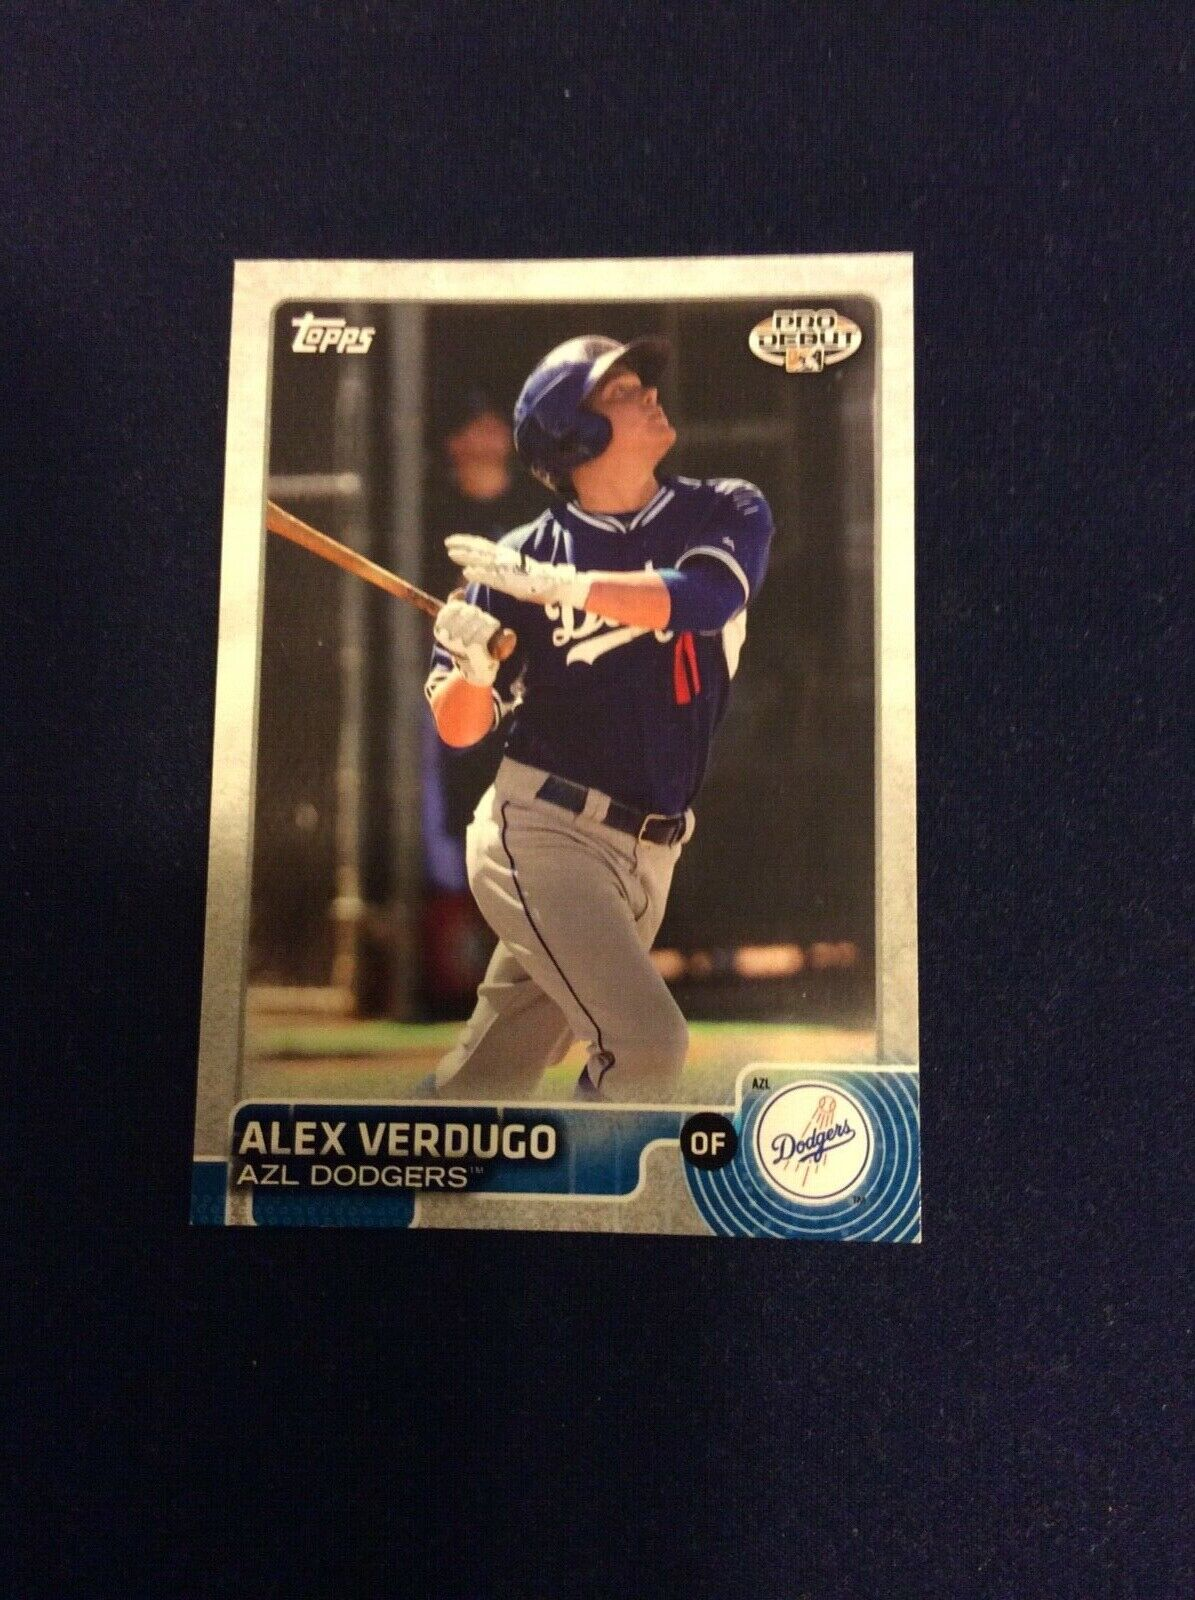 2015 Topps Pro Debut 5 Alex Verdugo Dodgers, Red Sox - $3.00